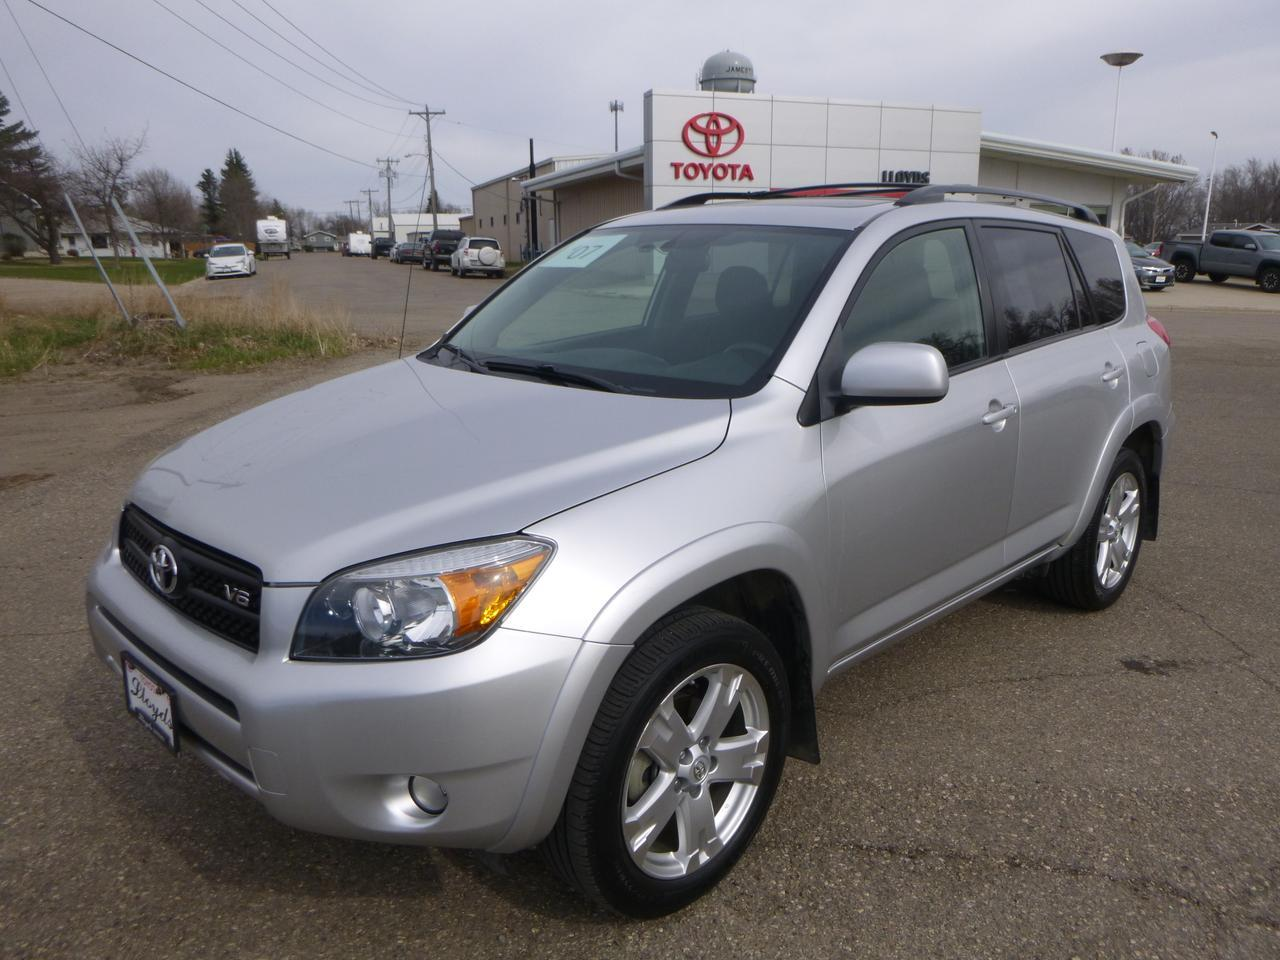 2007 Toyota Rav4 Sport V6 AWD Jamestown ND